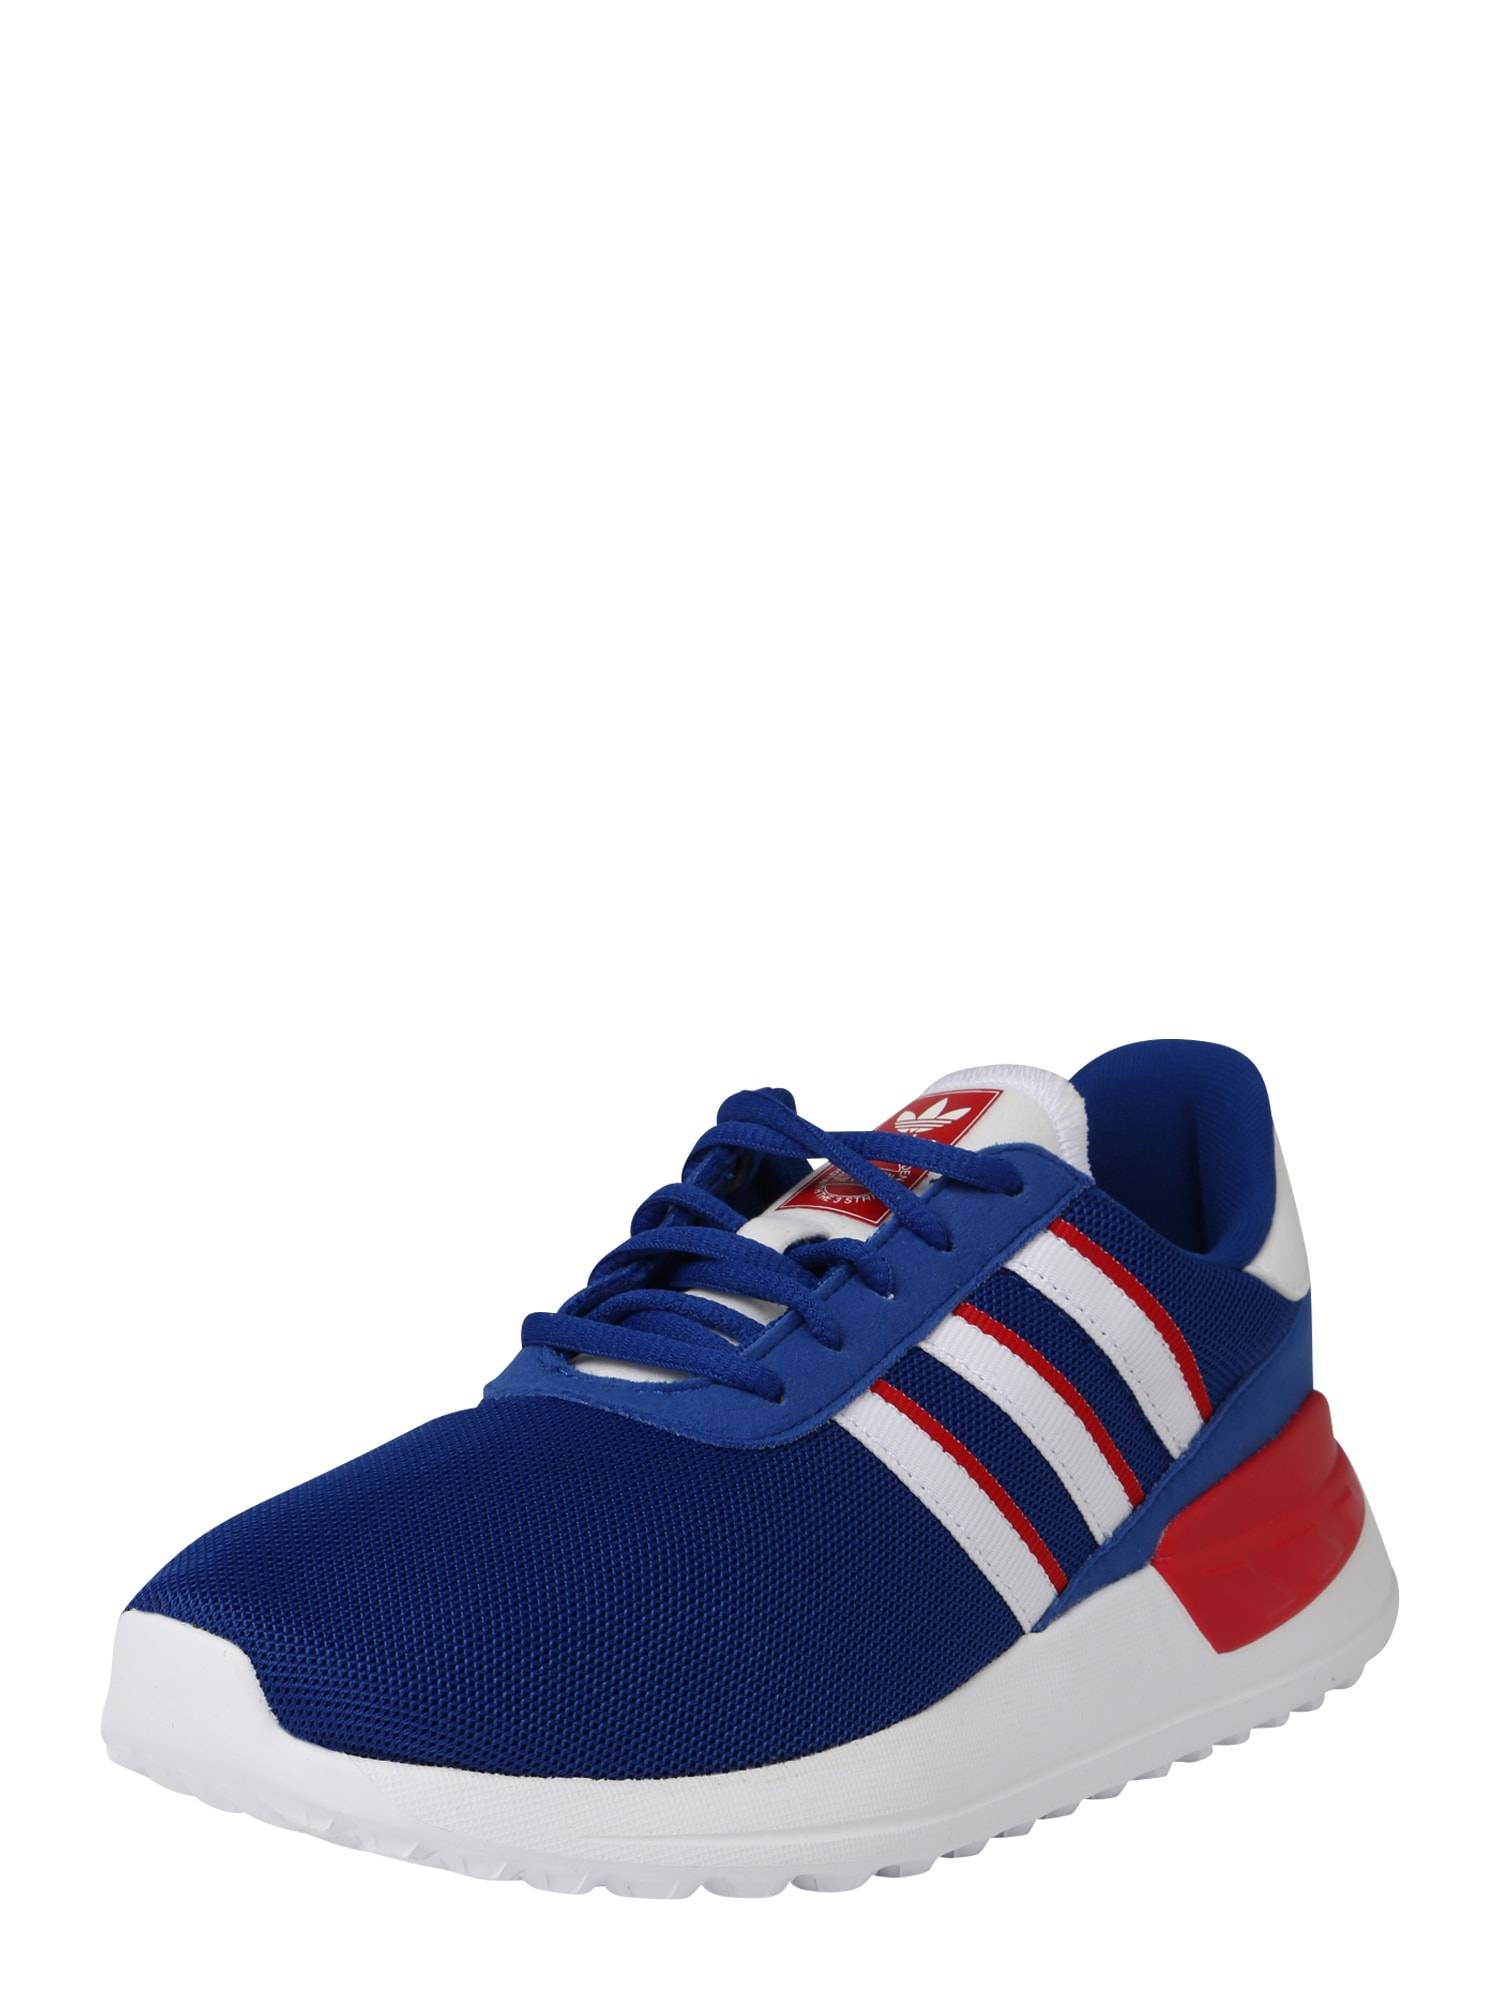 ADIDAS ORIGINALS Baskets 'LA TRAINER LITE C'  - Bleu - Taille: 31.5 - boy